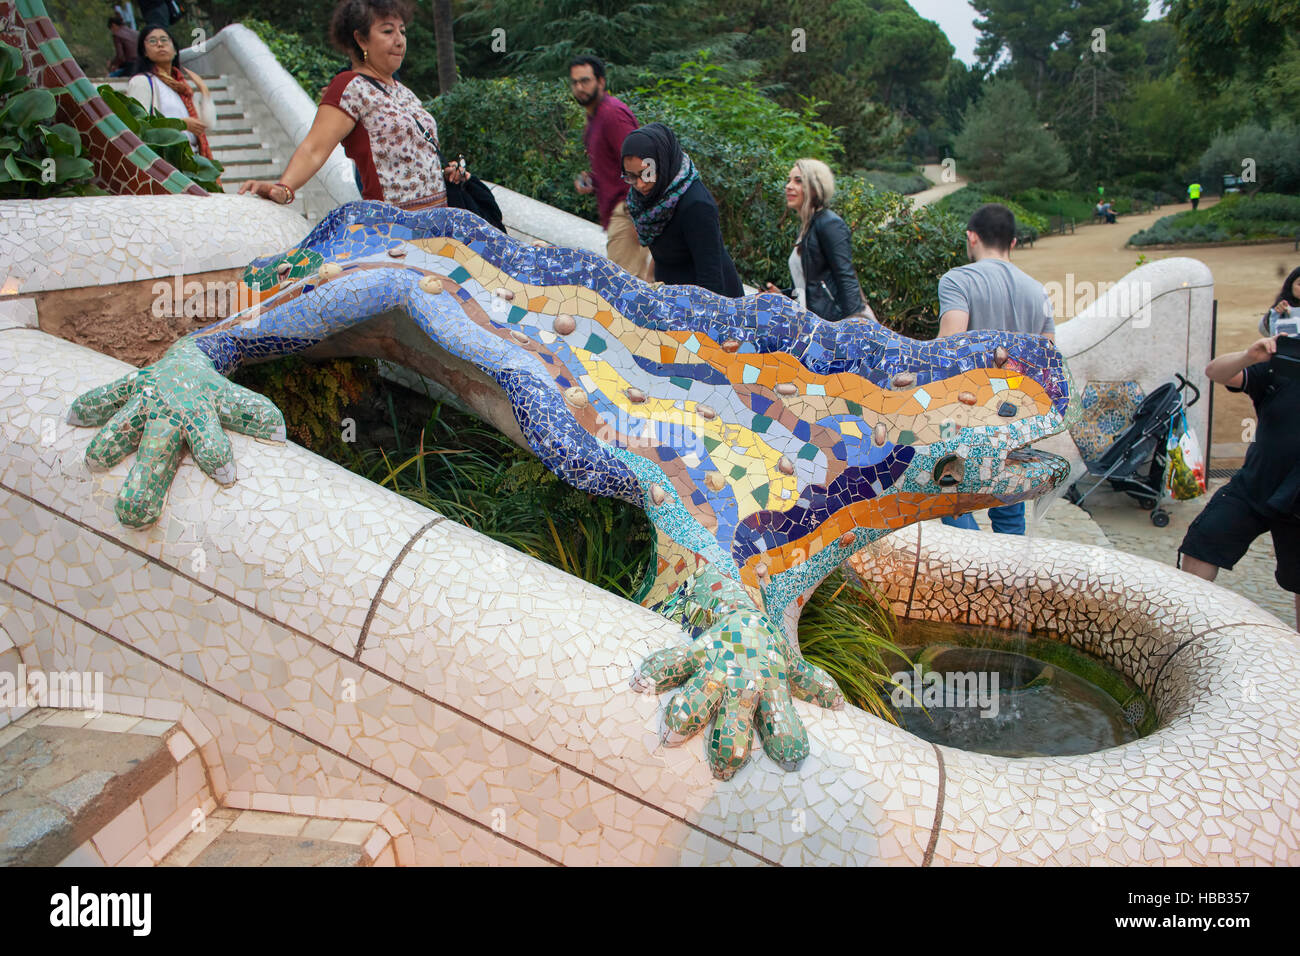 Dragon fountain el drac salamander by gaudi in park for Salamandra barcelona